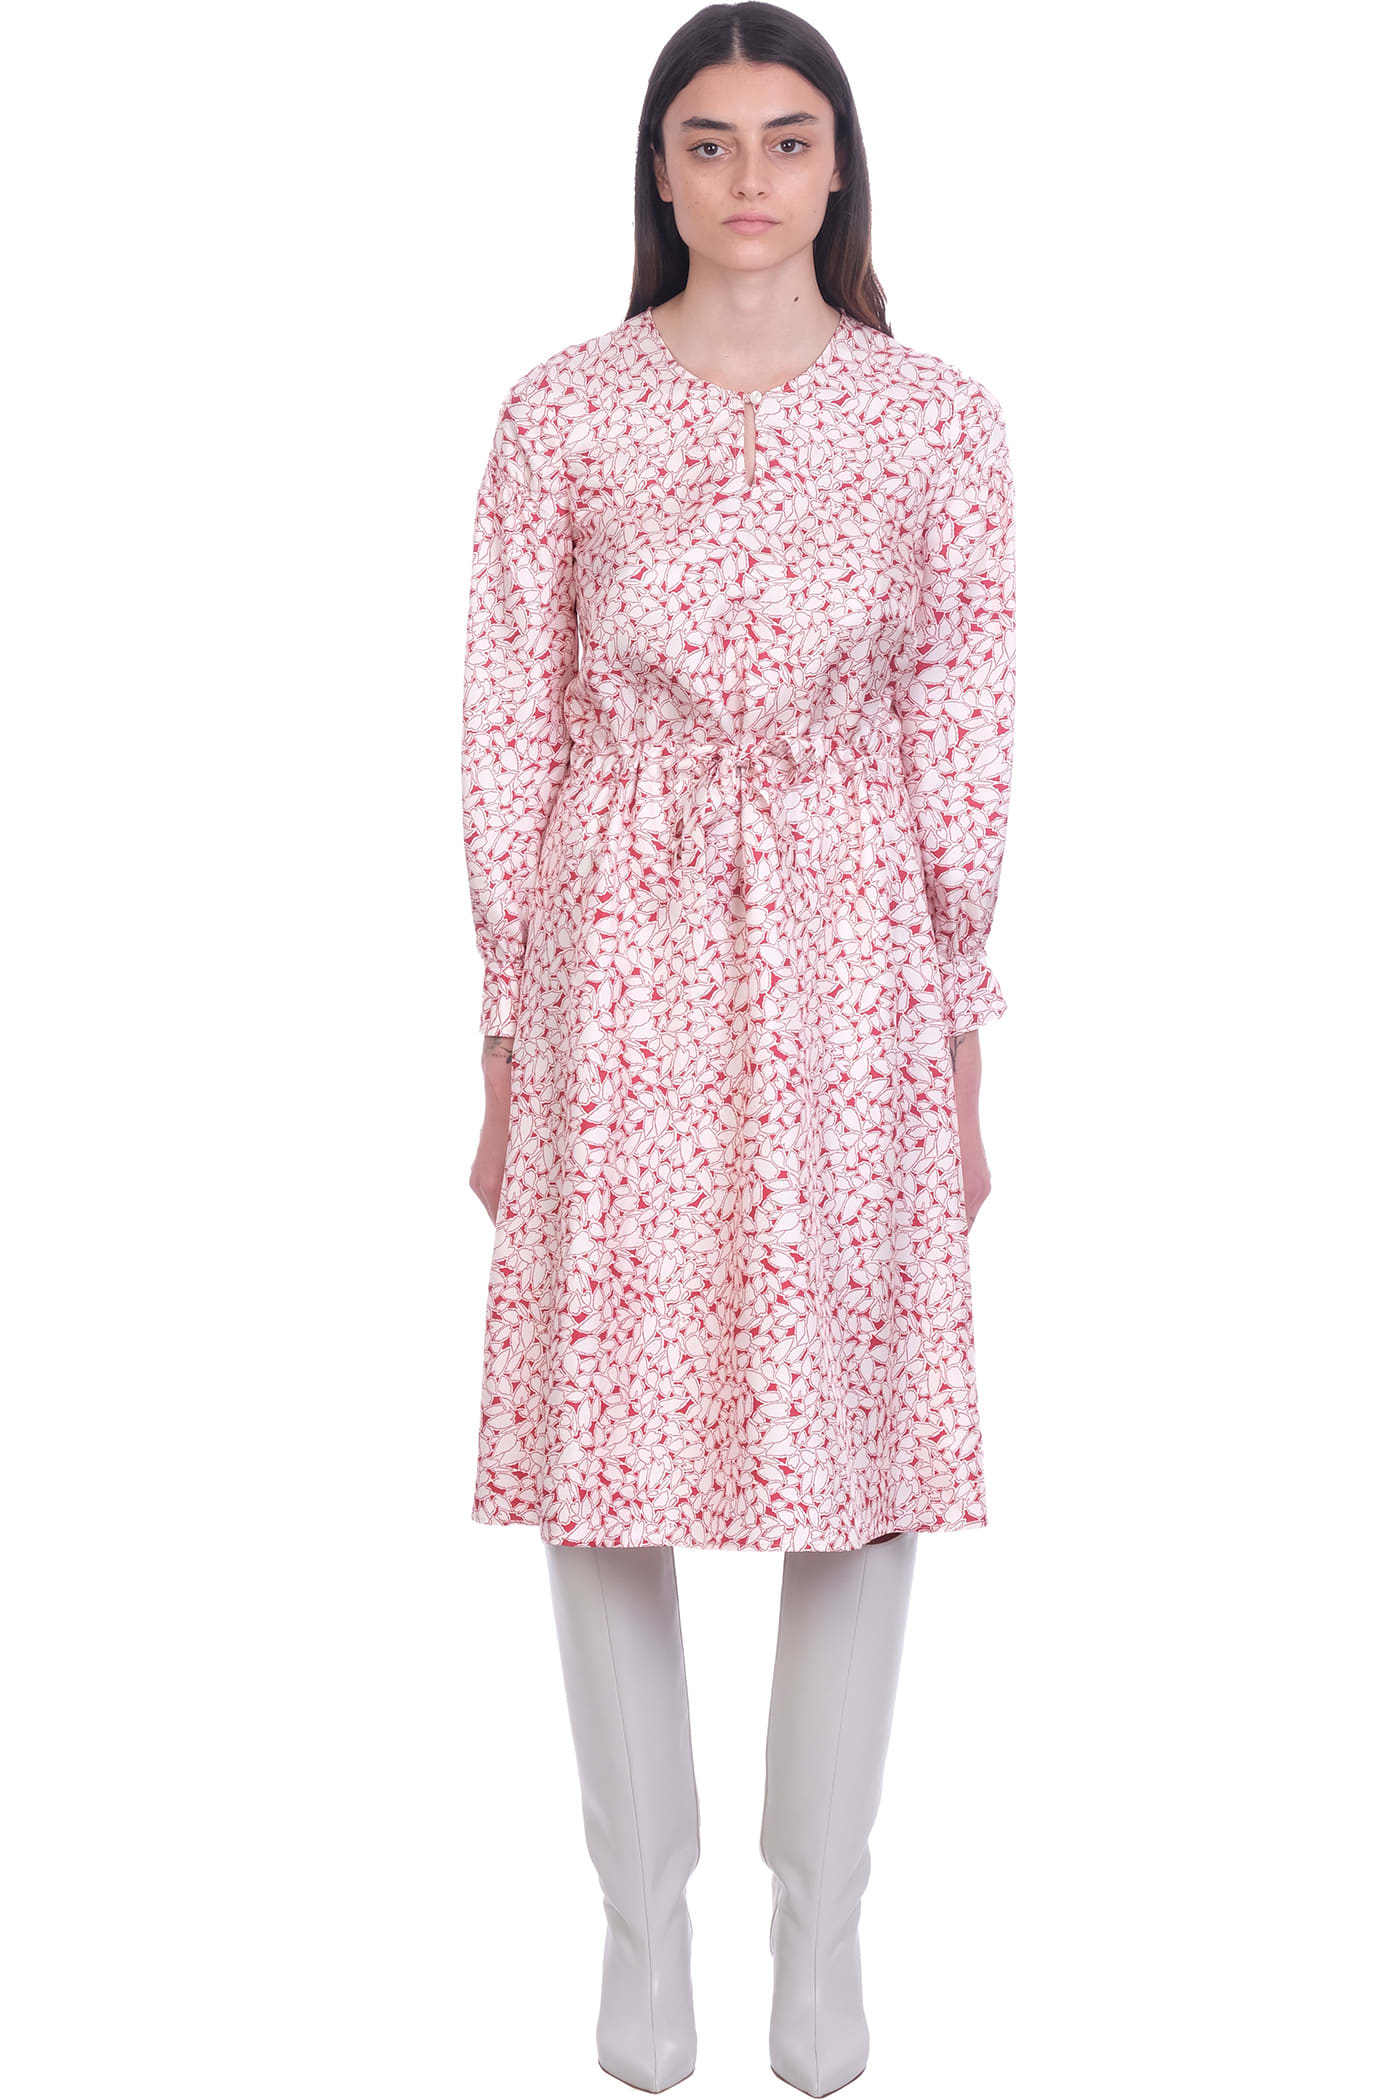 Buy A.P.C. Clemence Dress In White Silk online, shop A.P.C. with free shipping